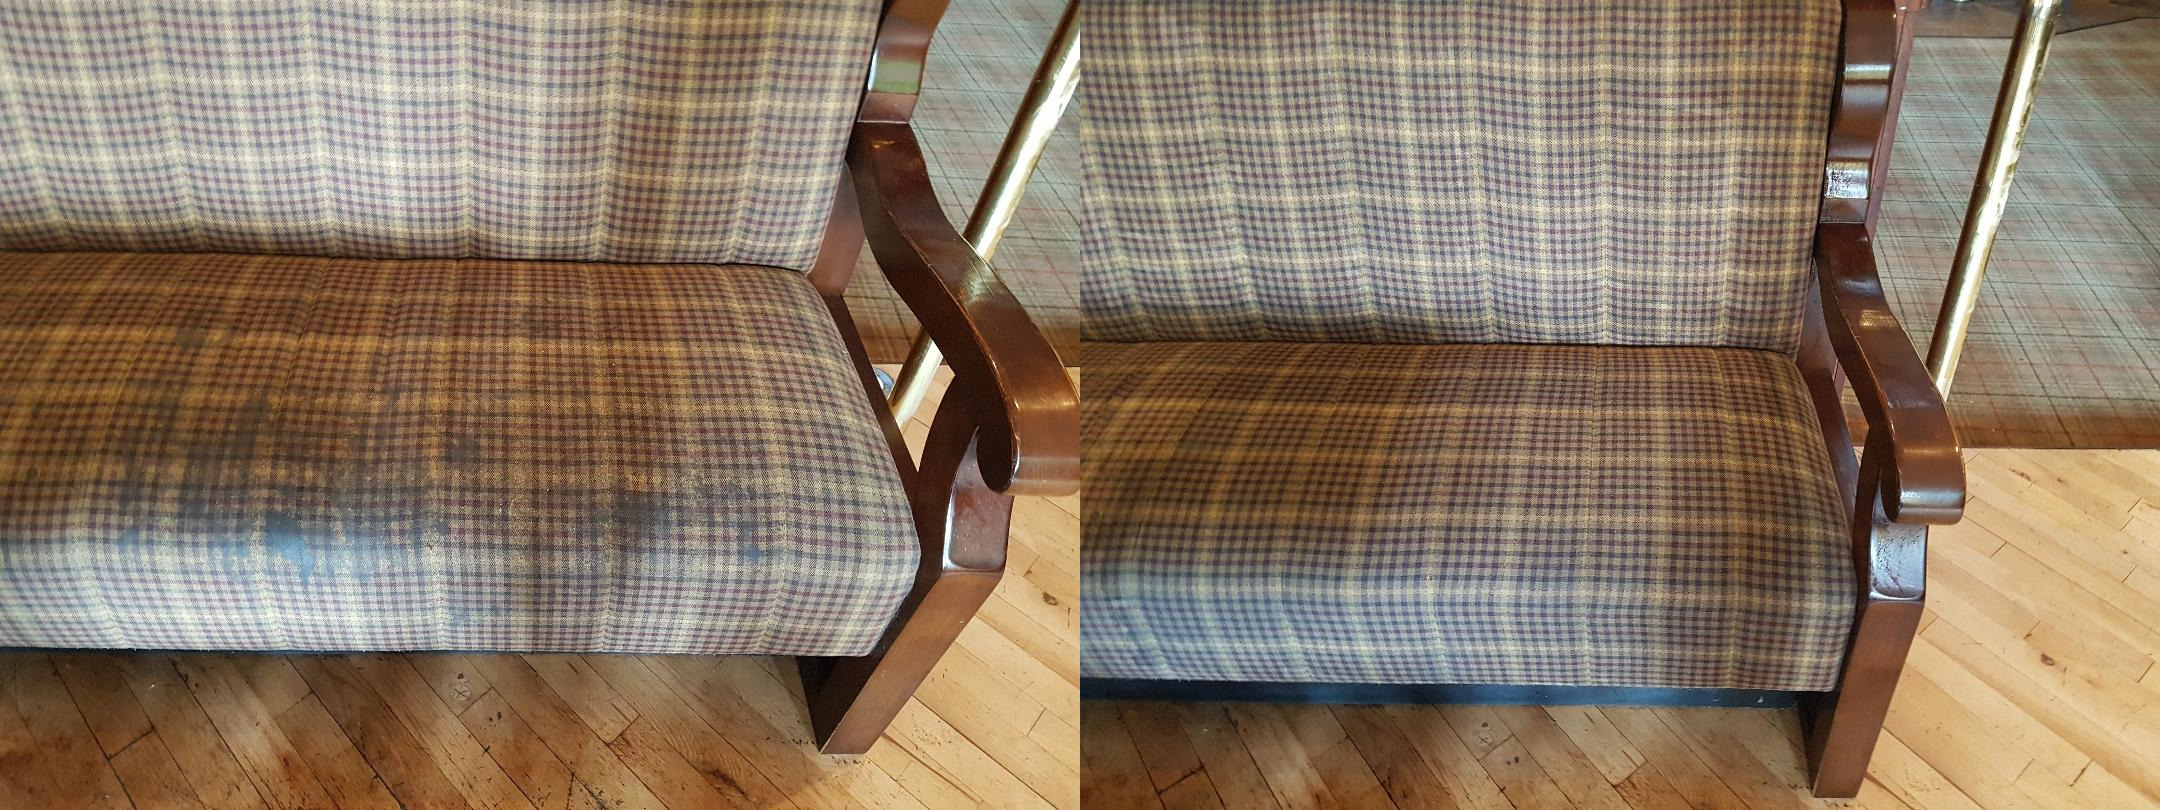 Before and after picture of upholstery been cleaned